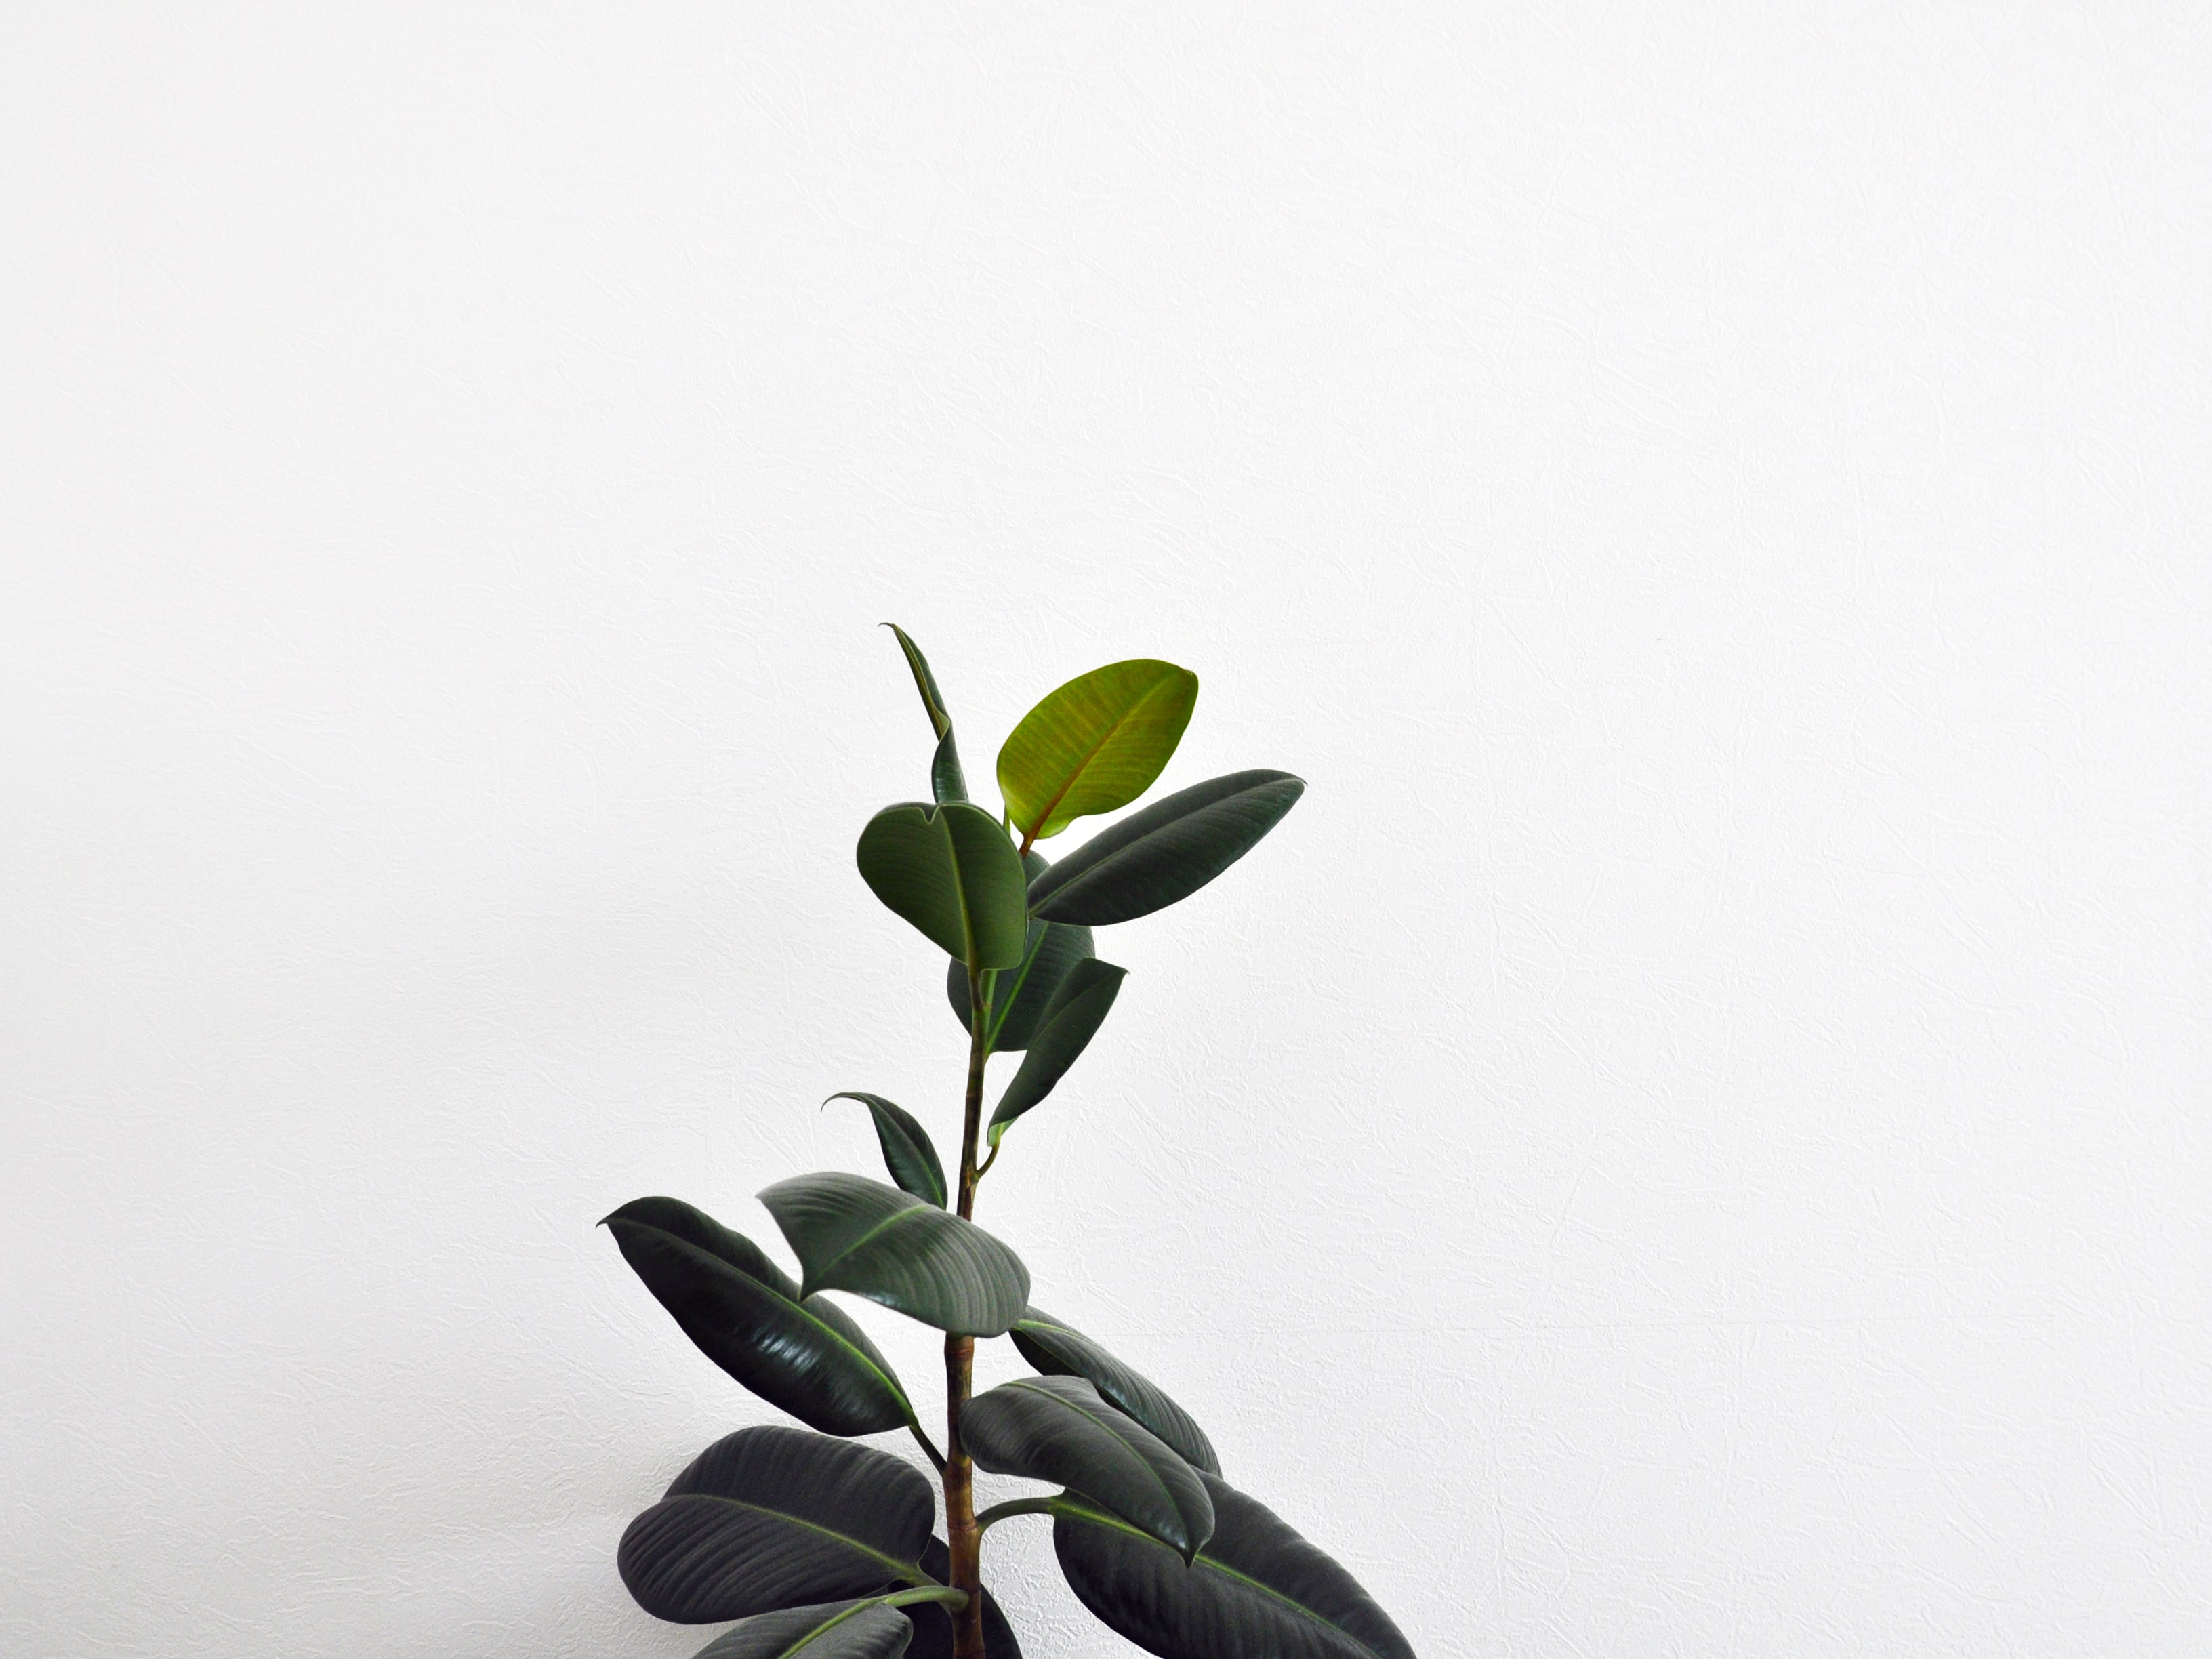 green rubber plant with white background